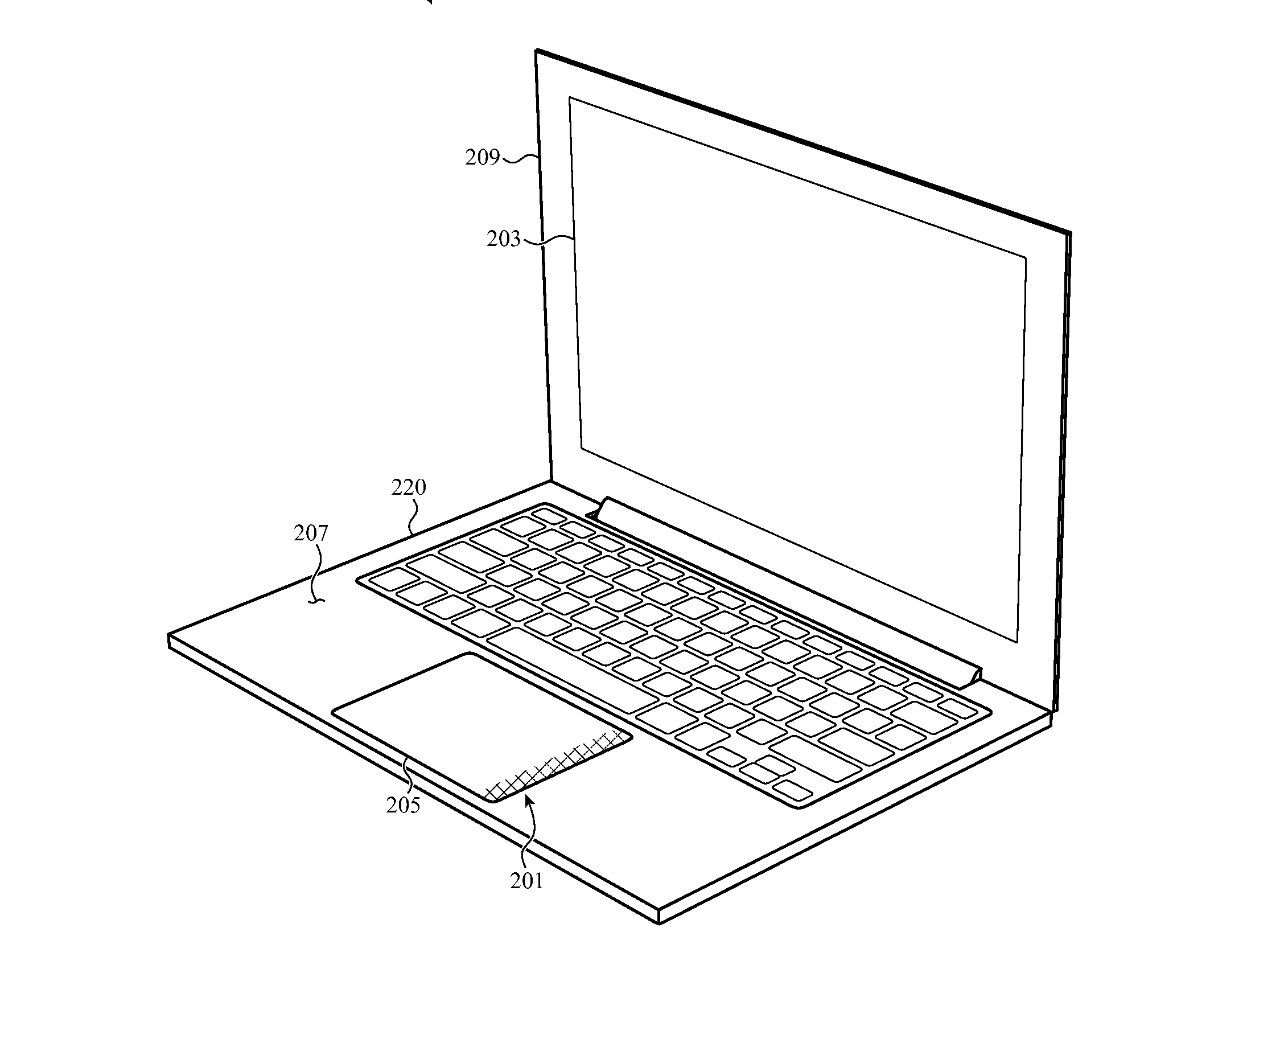 One portion of a MacBook Pro trackpad could become a tactile notification region